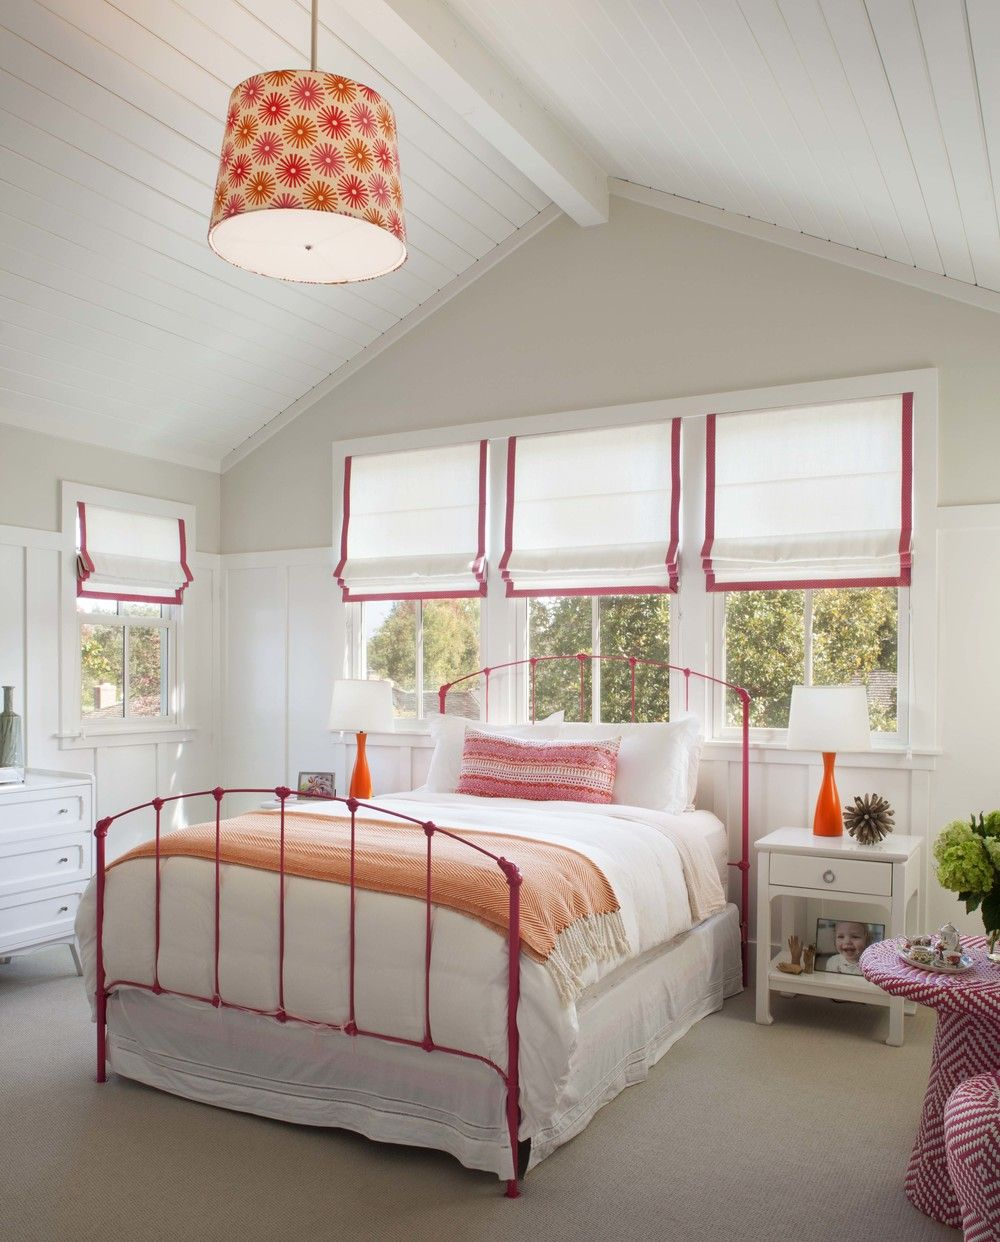 Trendy Teen Girls Bedding Ideas With A Contemporary Vibe: Modern Farmhouse: Girl's Bedroom